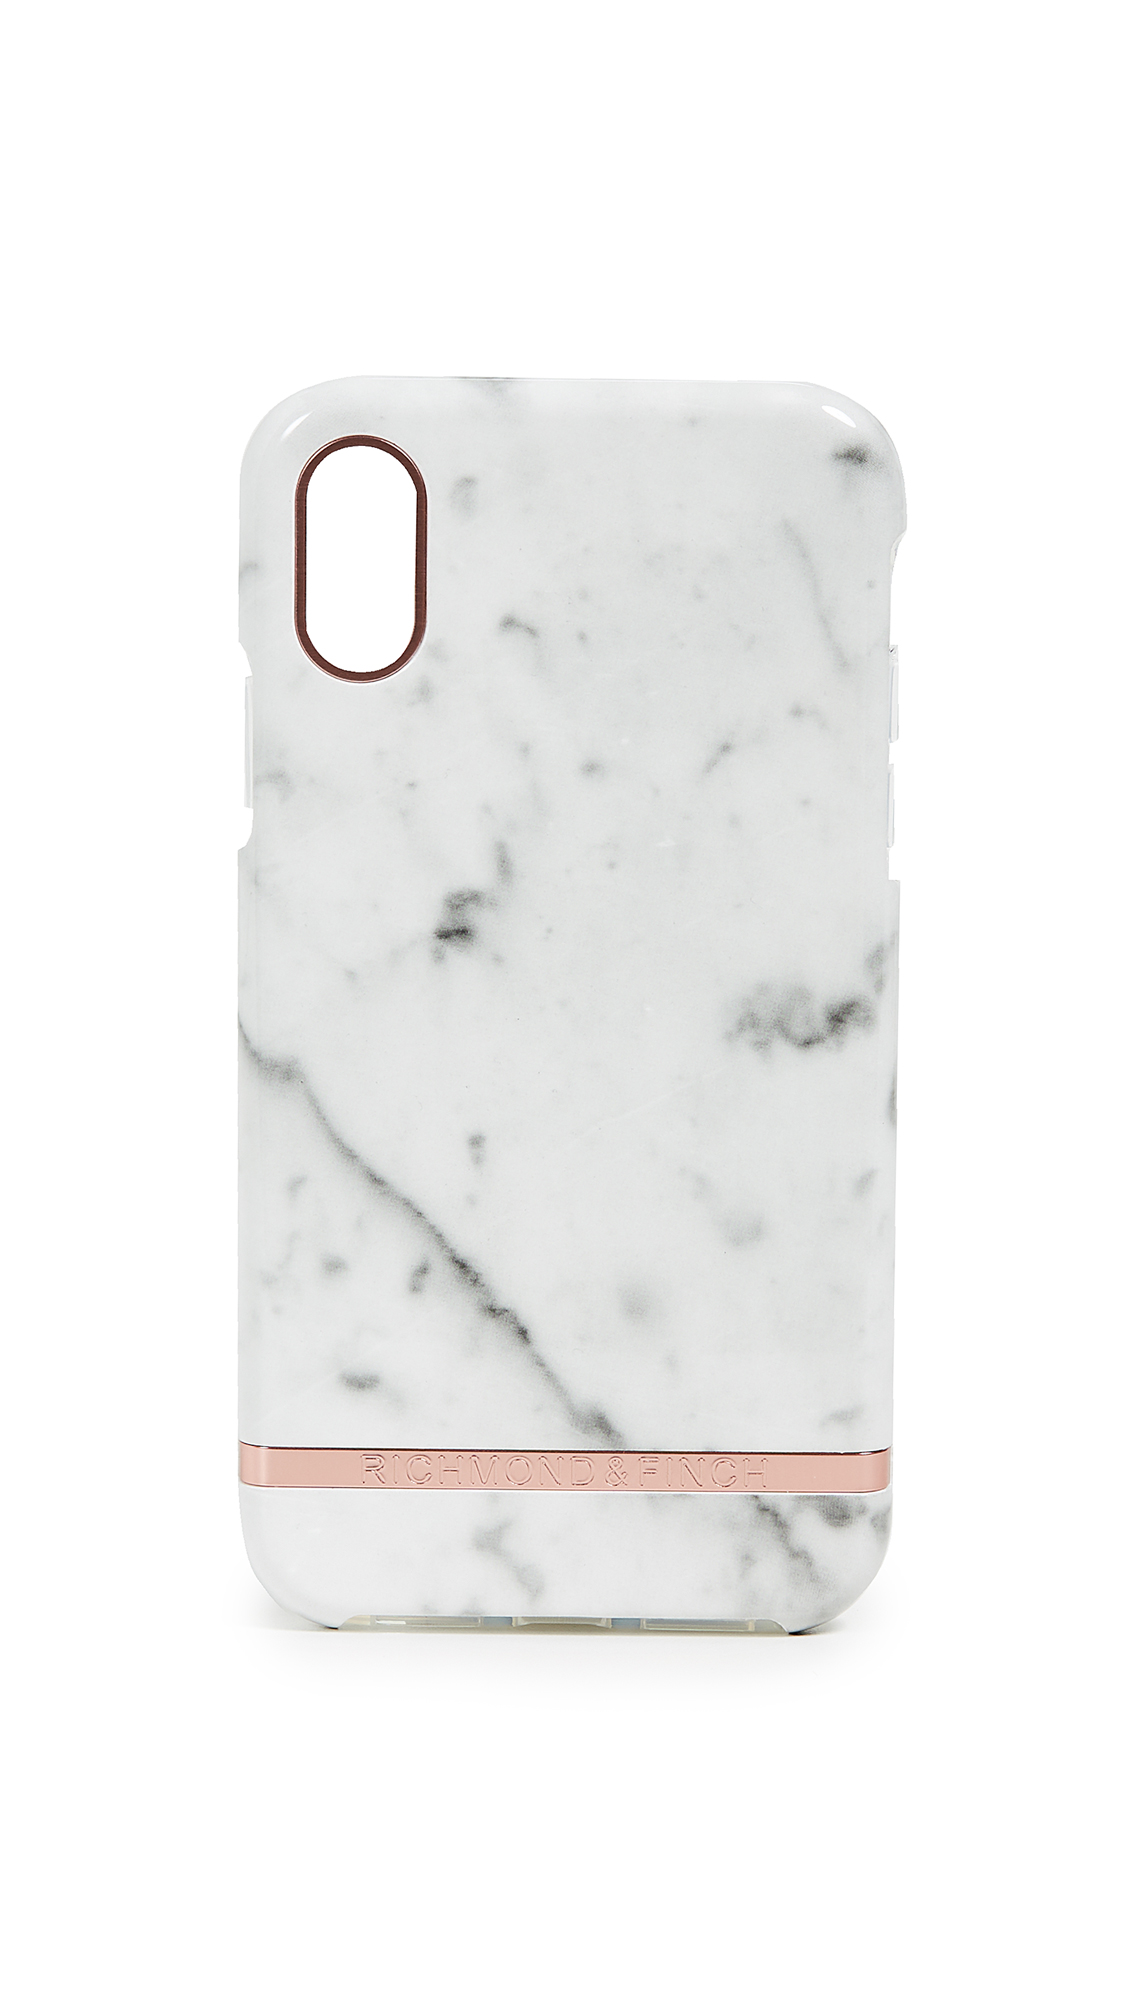 RICHMOND & FINCH White Marble Iphone Xr Case in White Marble/Rose Gold